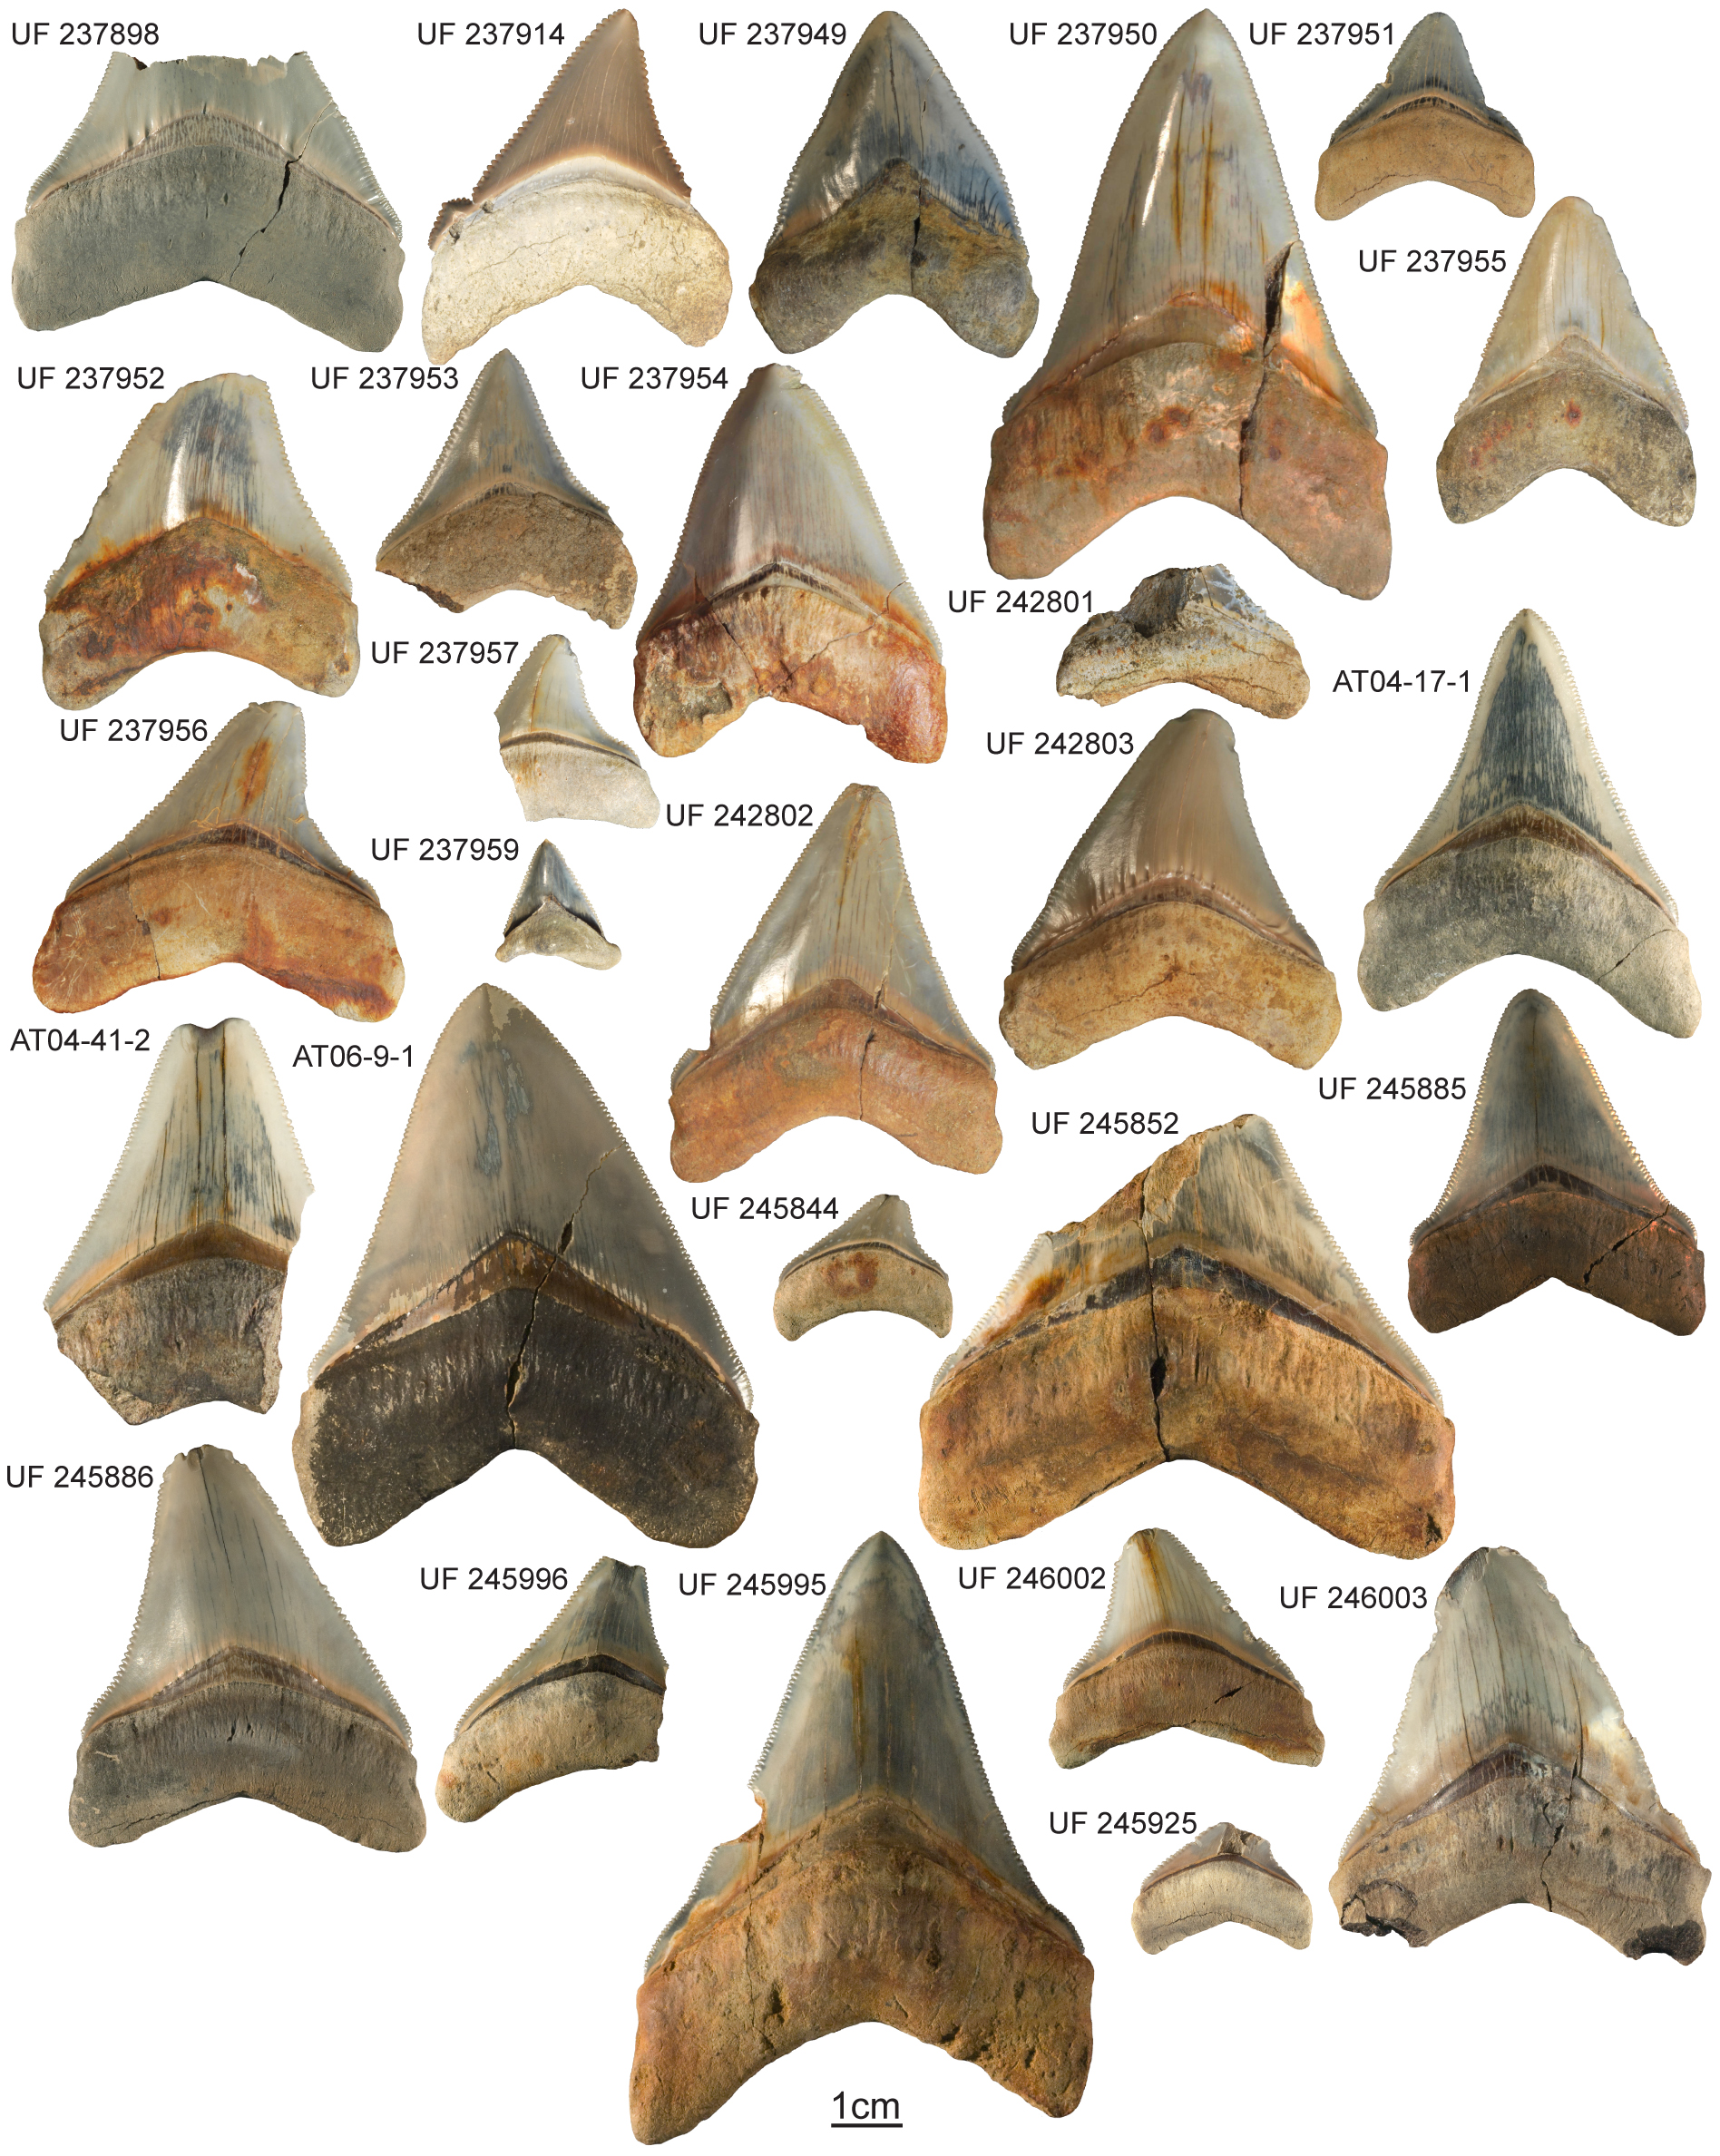 Some teeth of the megalodon were up to 7-inches long. Photo: Courtesy of ©Pimiento/Florida Museum of Natural History